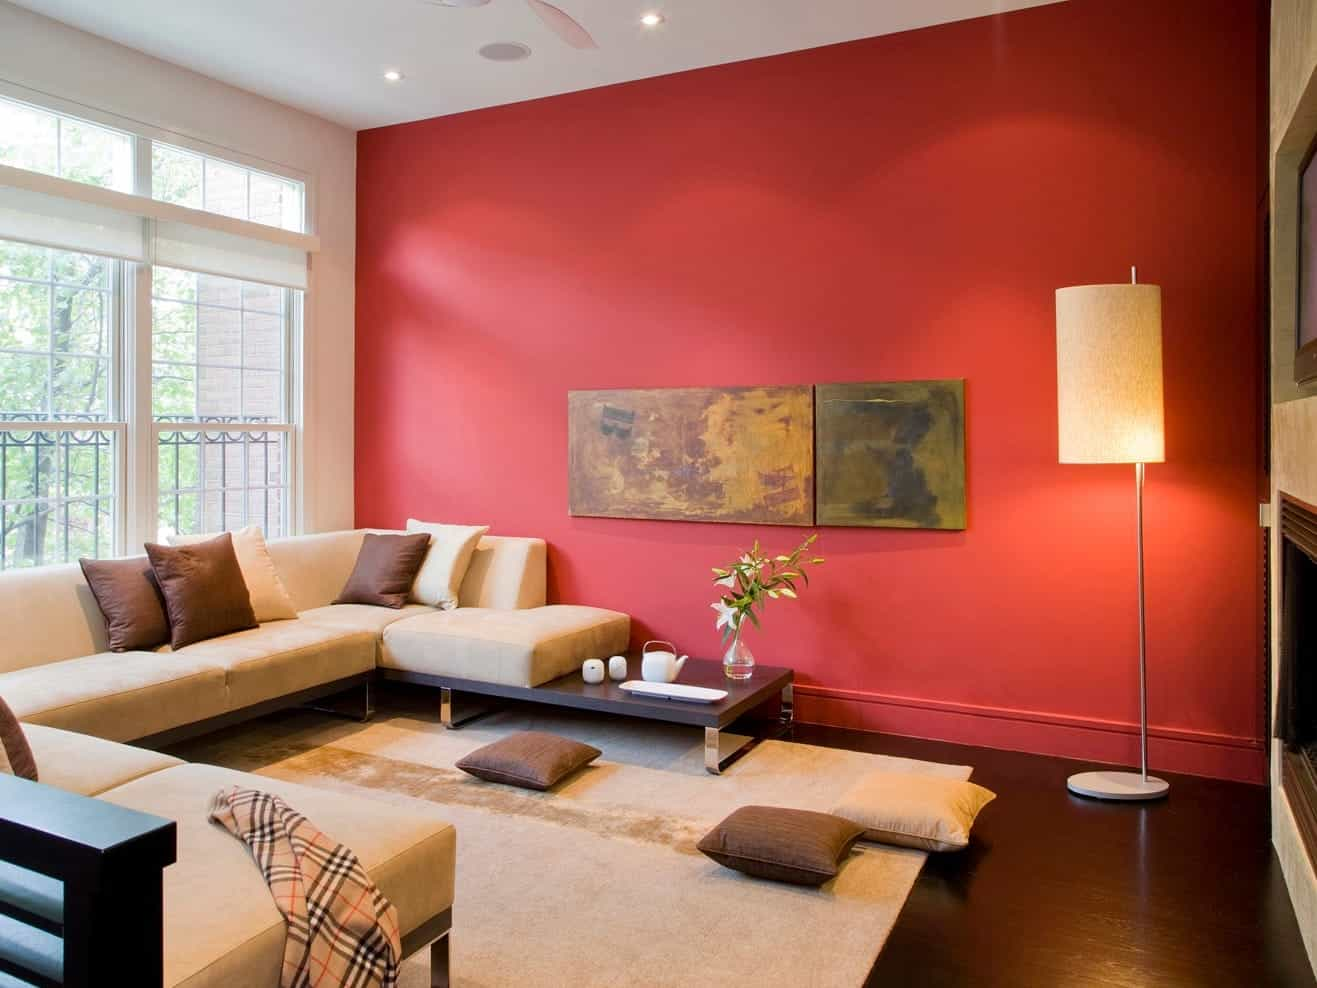 Modern Asian Living Room With Beige Sectional And Red Wall (View 11 of 32)